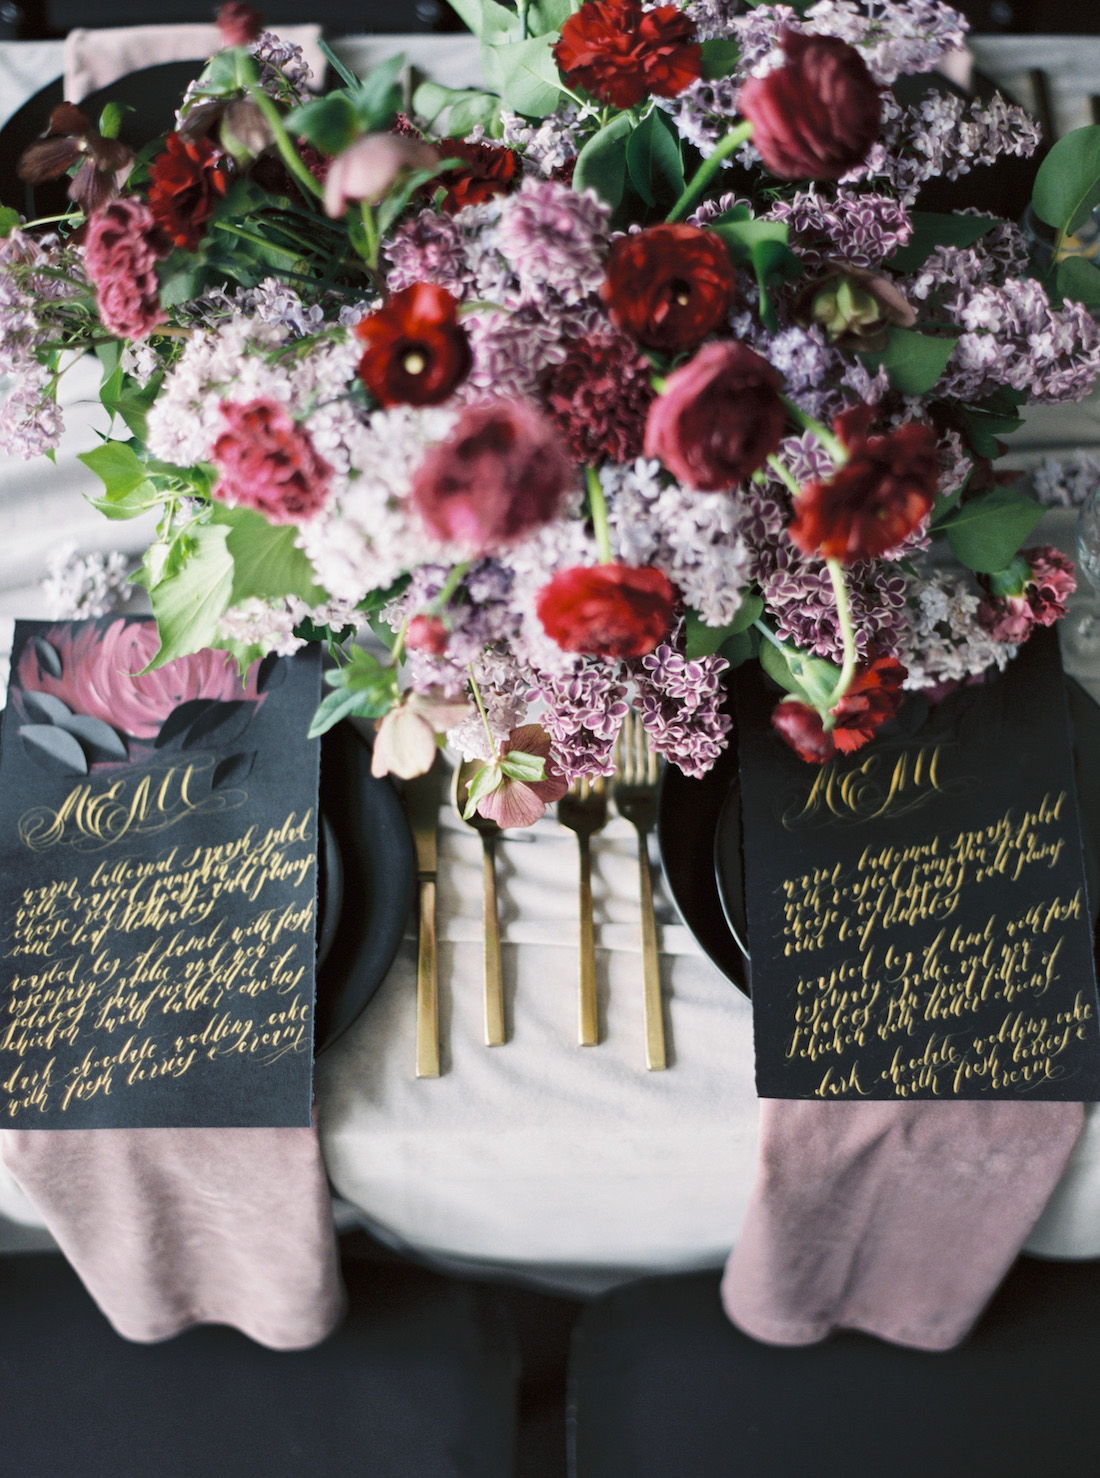 London Wedding Invitations showing how to weave black tie ideas through the table setting